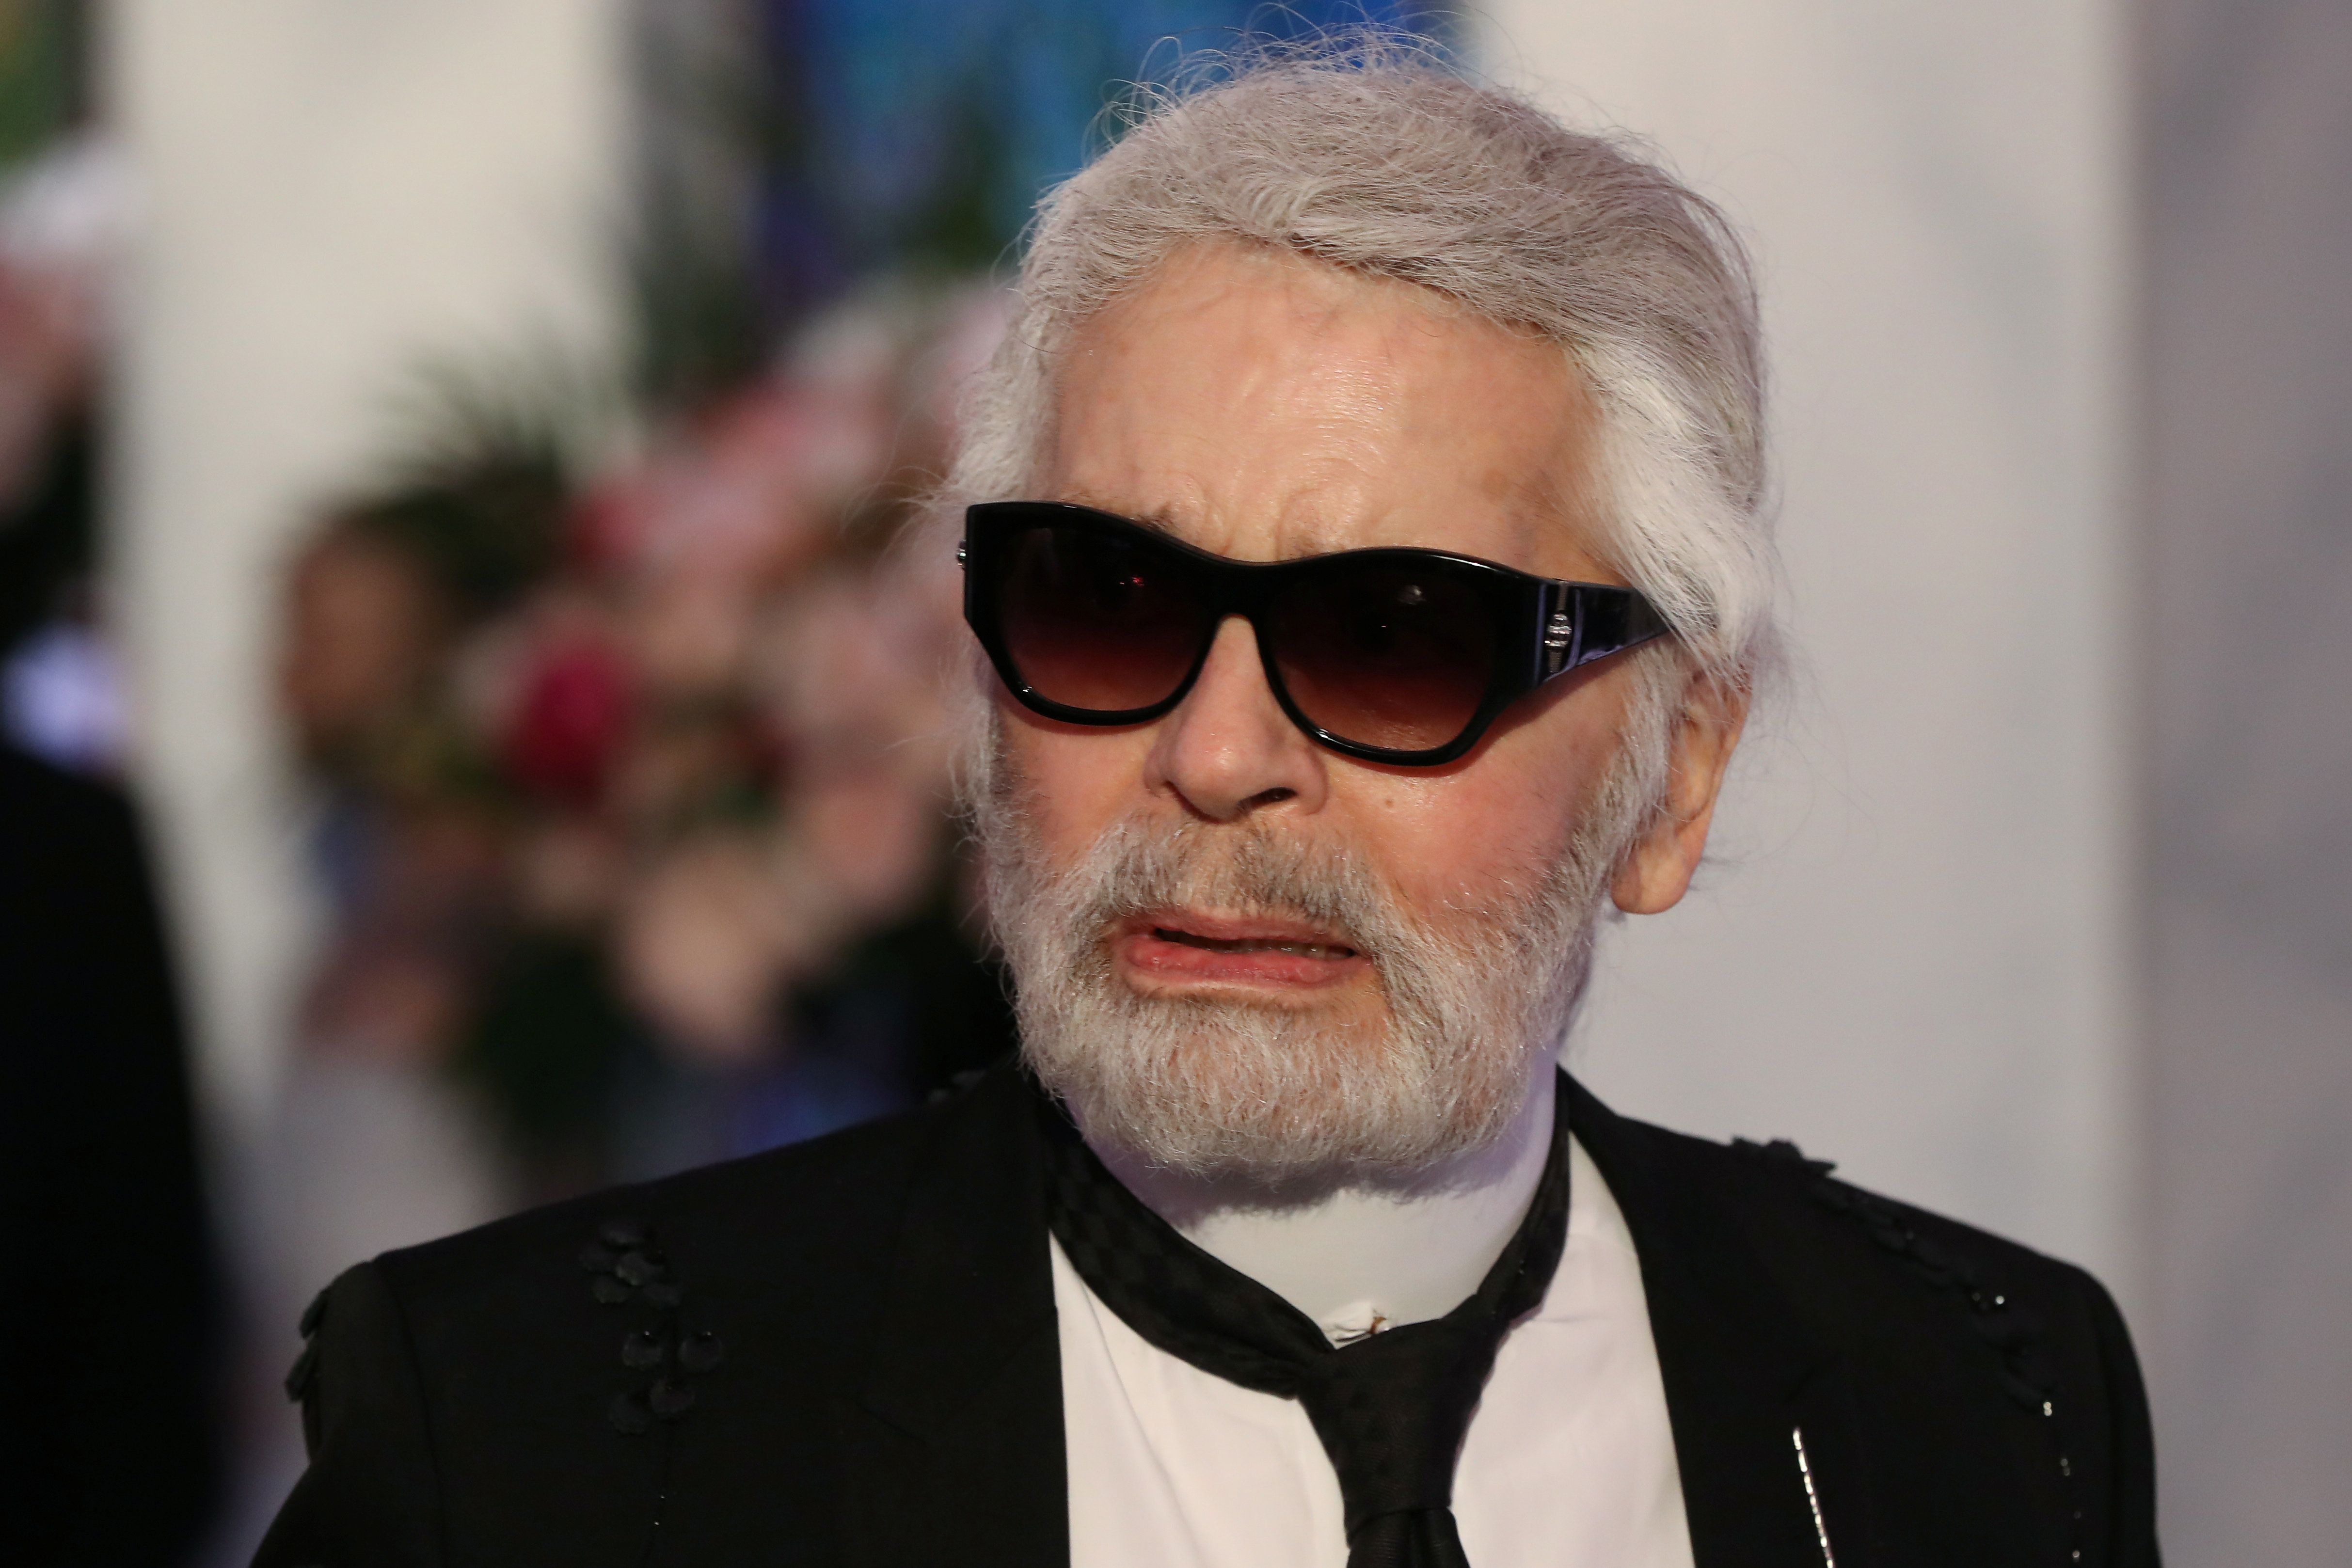 Karl Lagerfeld is facing backlash over his comments about models and the Me Too movement.